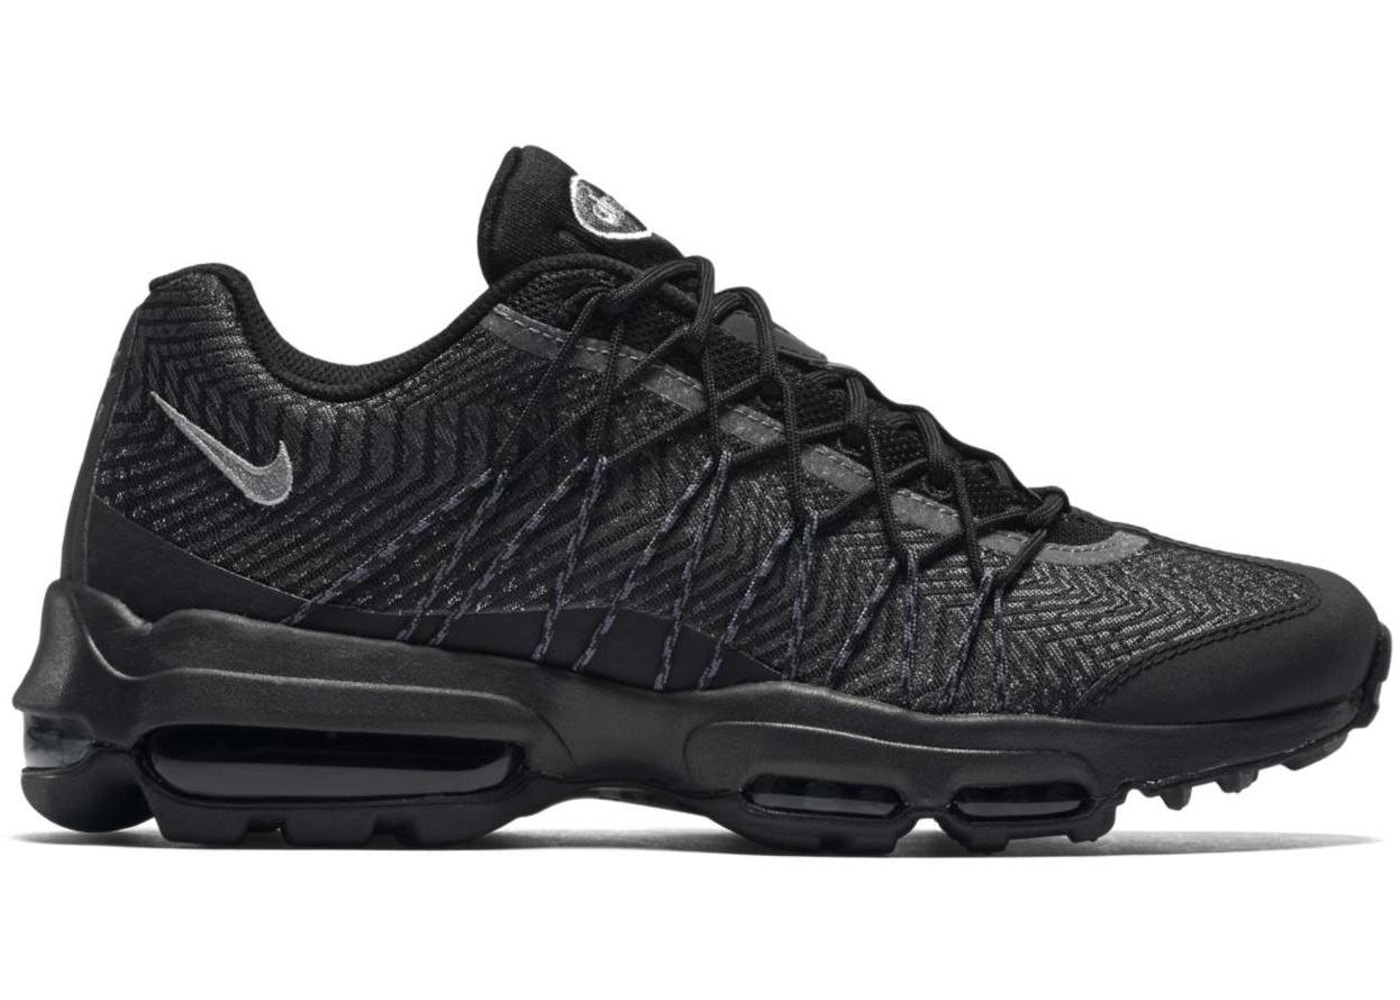 ナイキ メンズ エアマックス95Nike Air Max 95 Jacquard Black Silver DARK GREY-WHITE